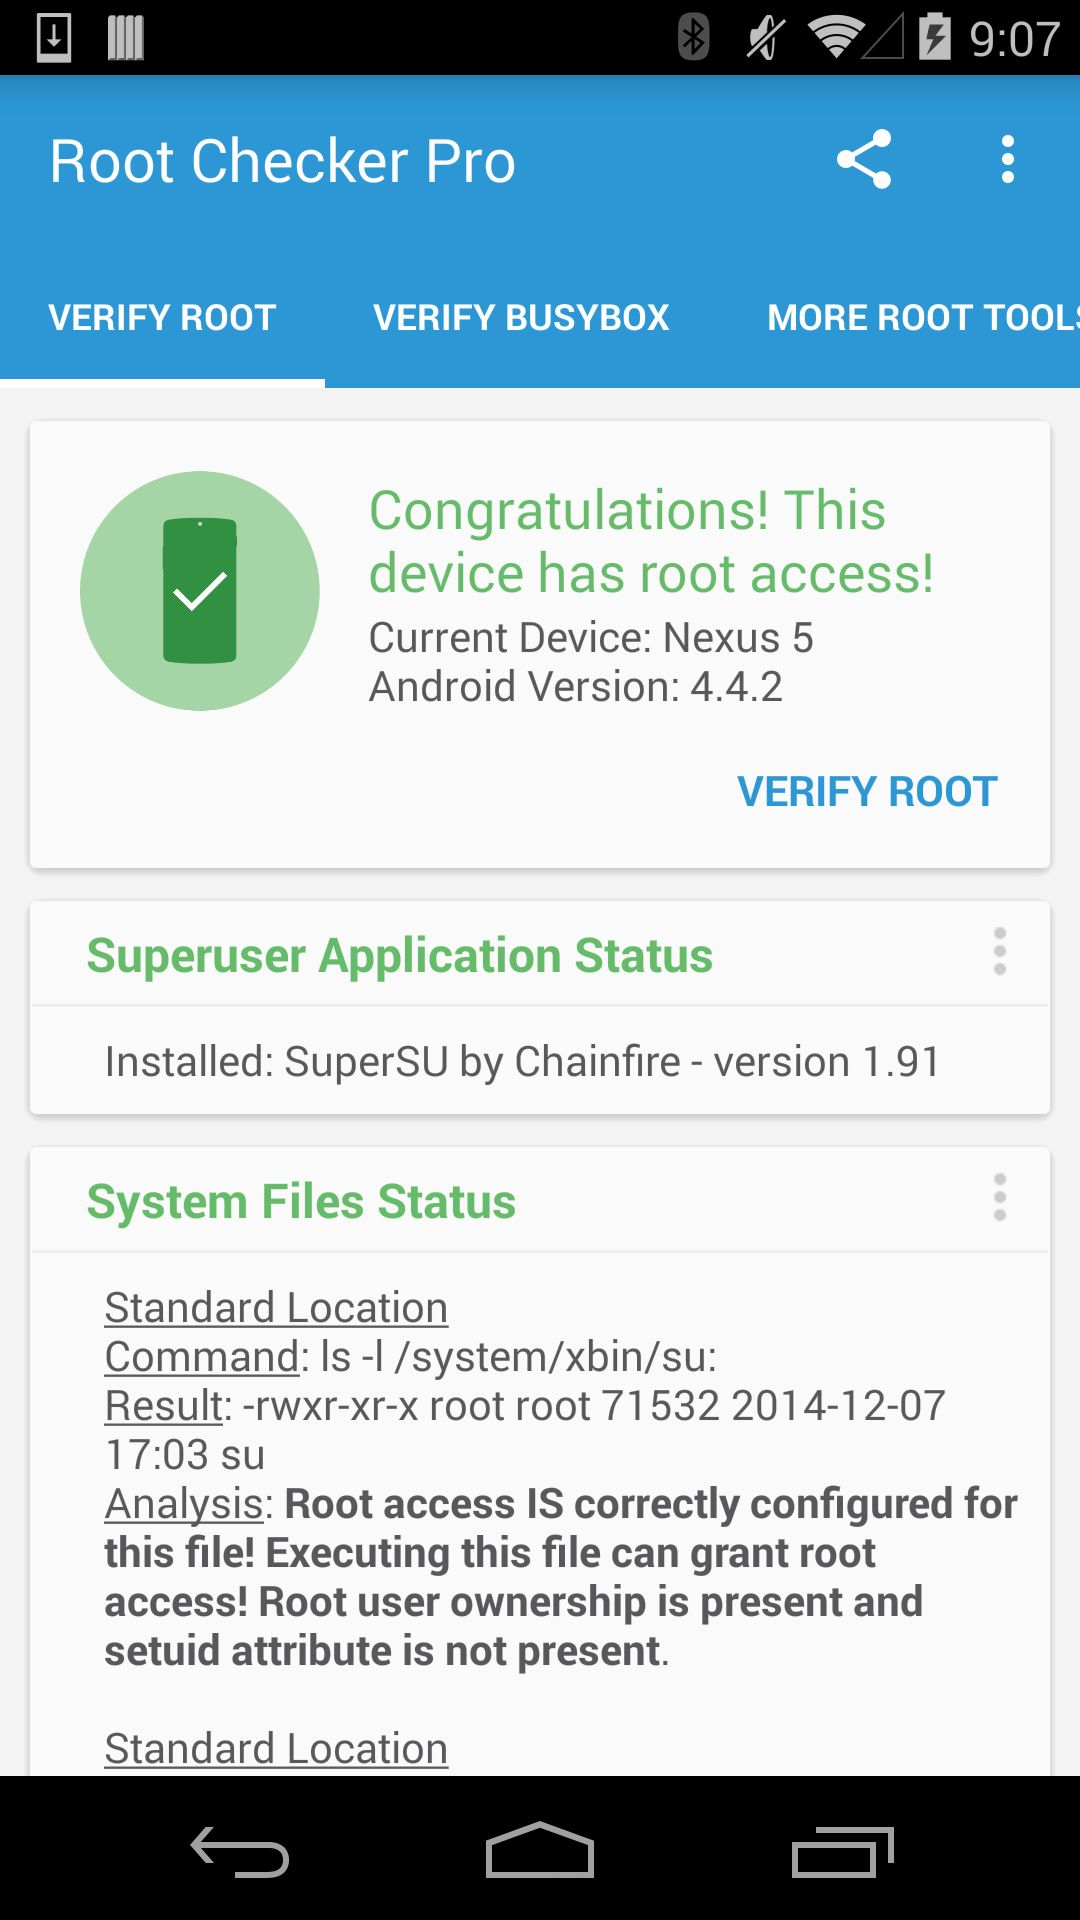 Congratulations! This device has root access